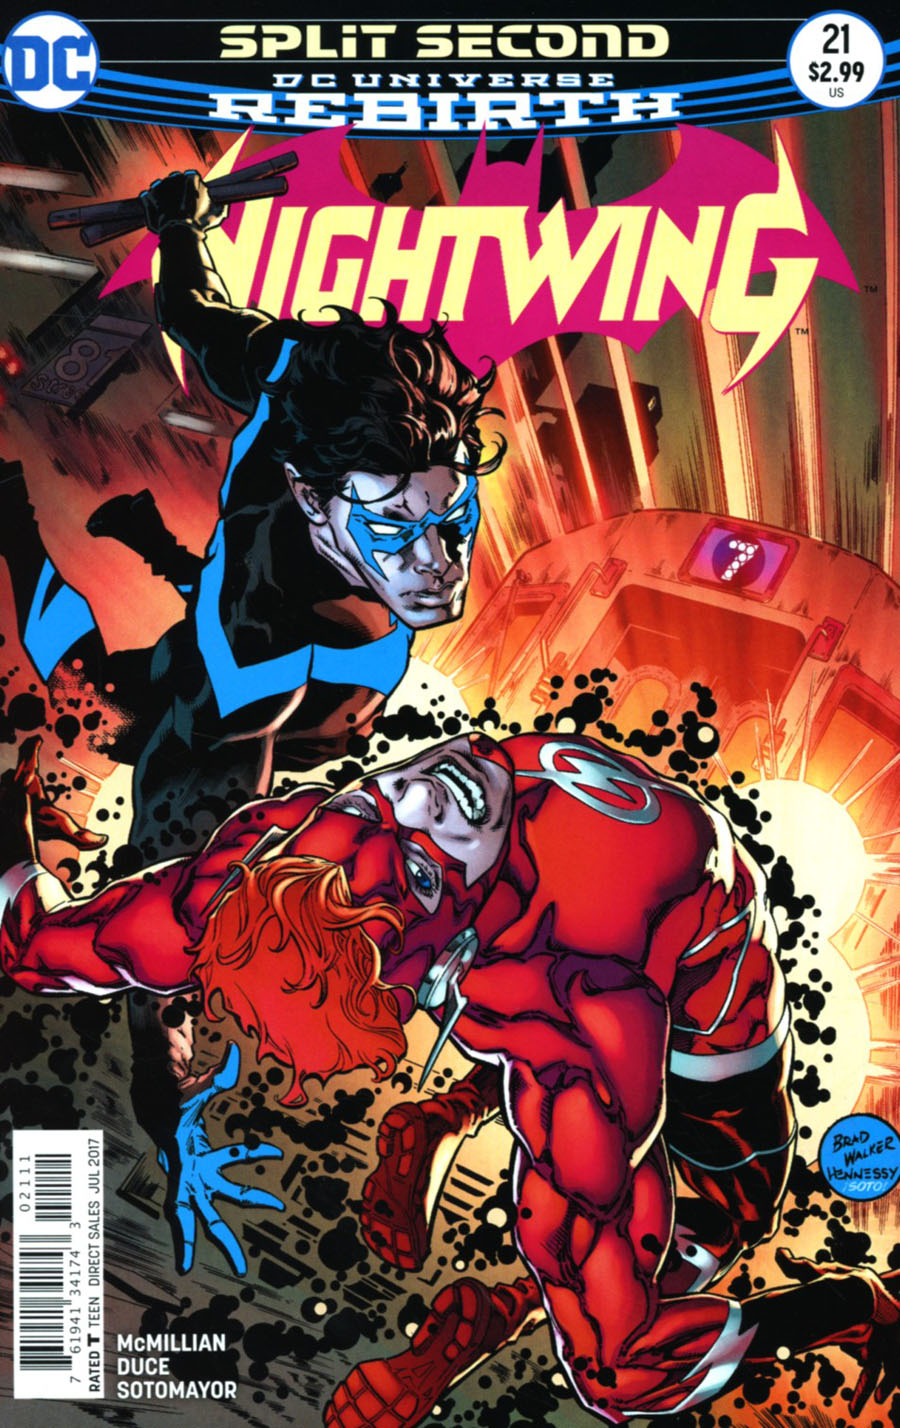 Nightwing Vol 4 #21 Cover A Regular Brad Walker & Andrew Hennessy Cover